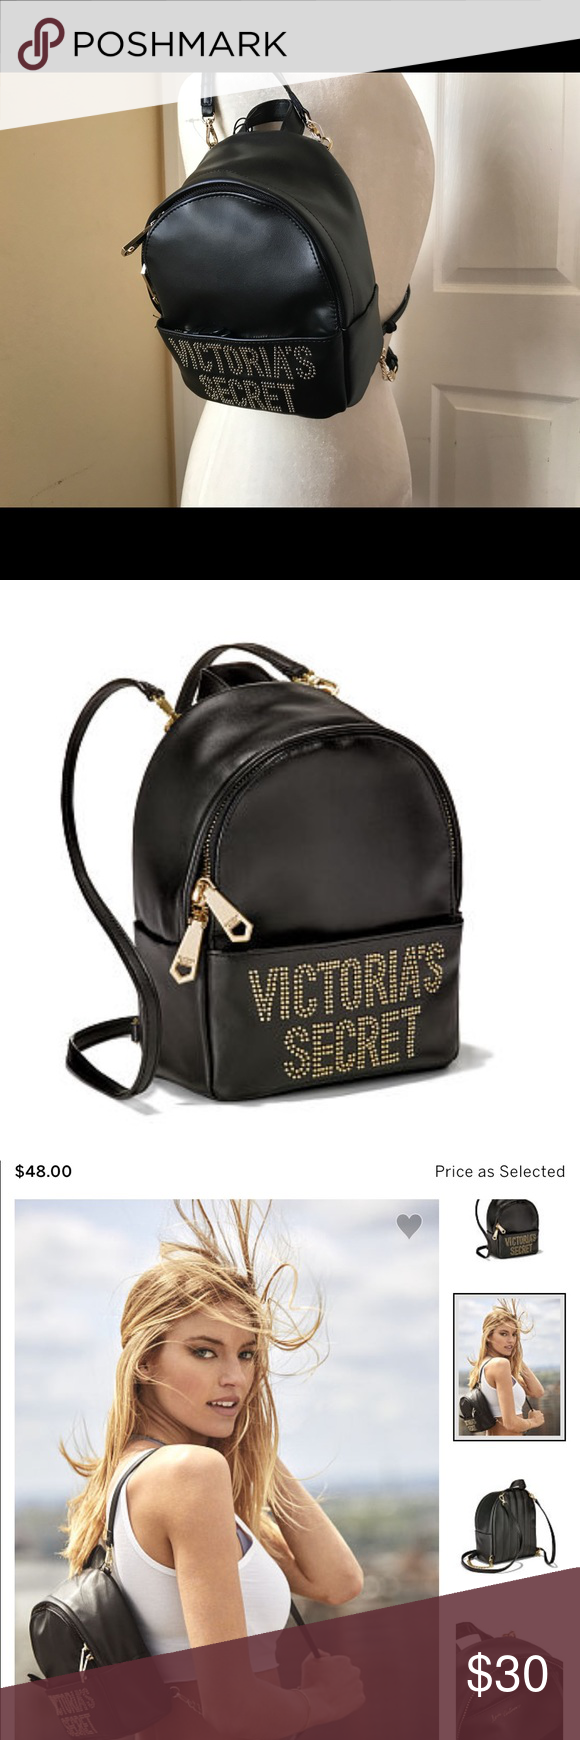 Victoria's Secret backpack NWT glam rock backpack Victoria's Secret Bags Backpacks